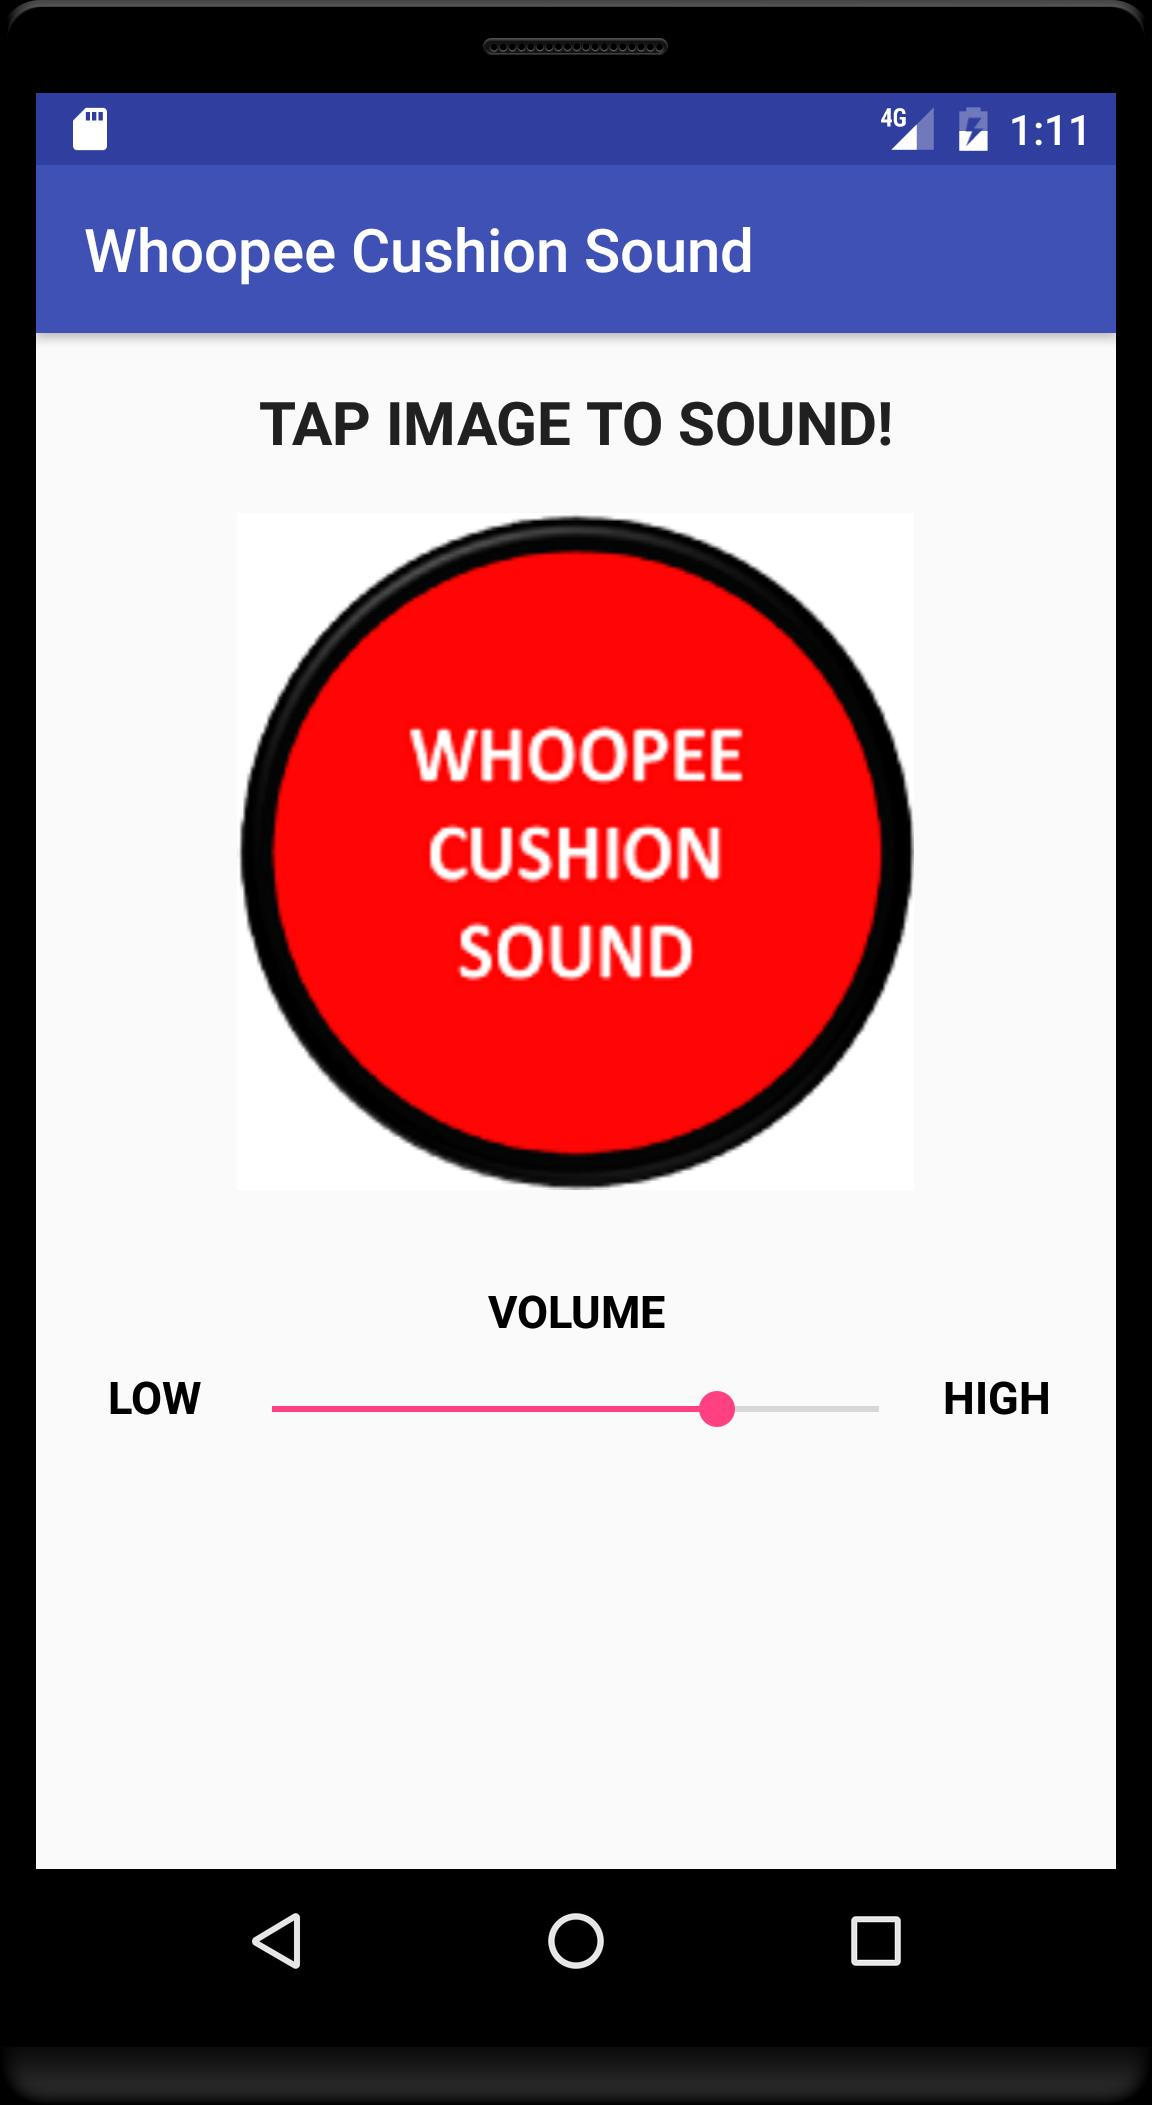 Whoopee Cushion Sound